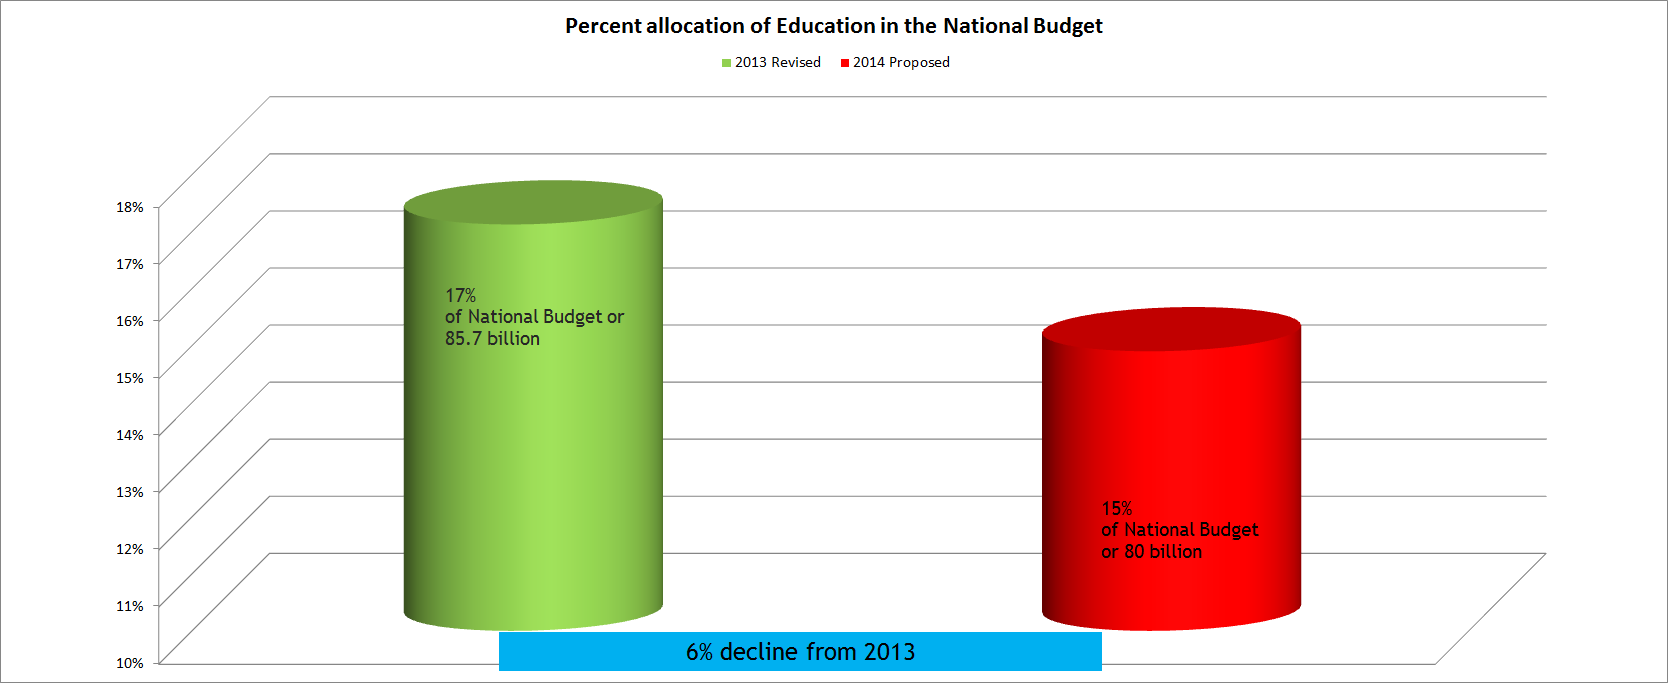 Percent allocation to education